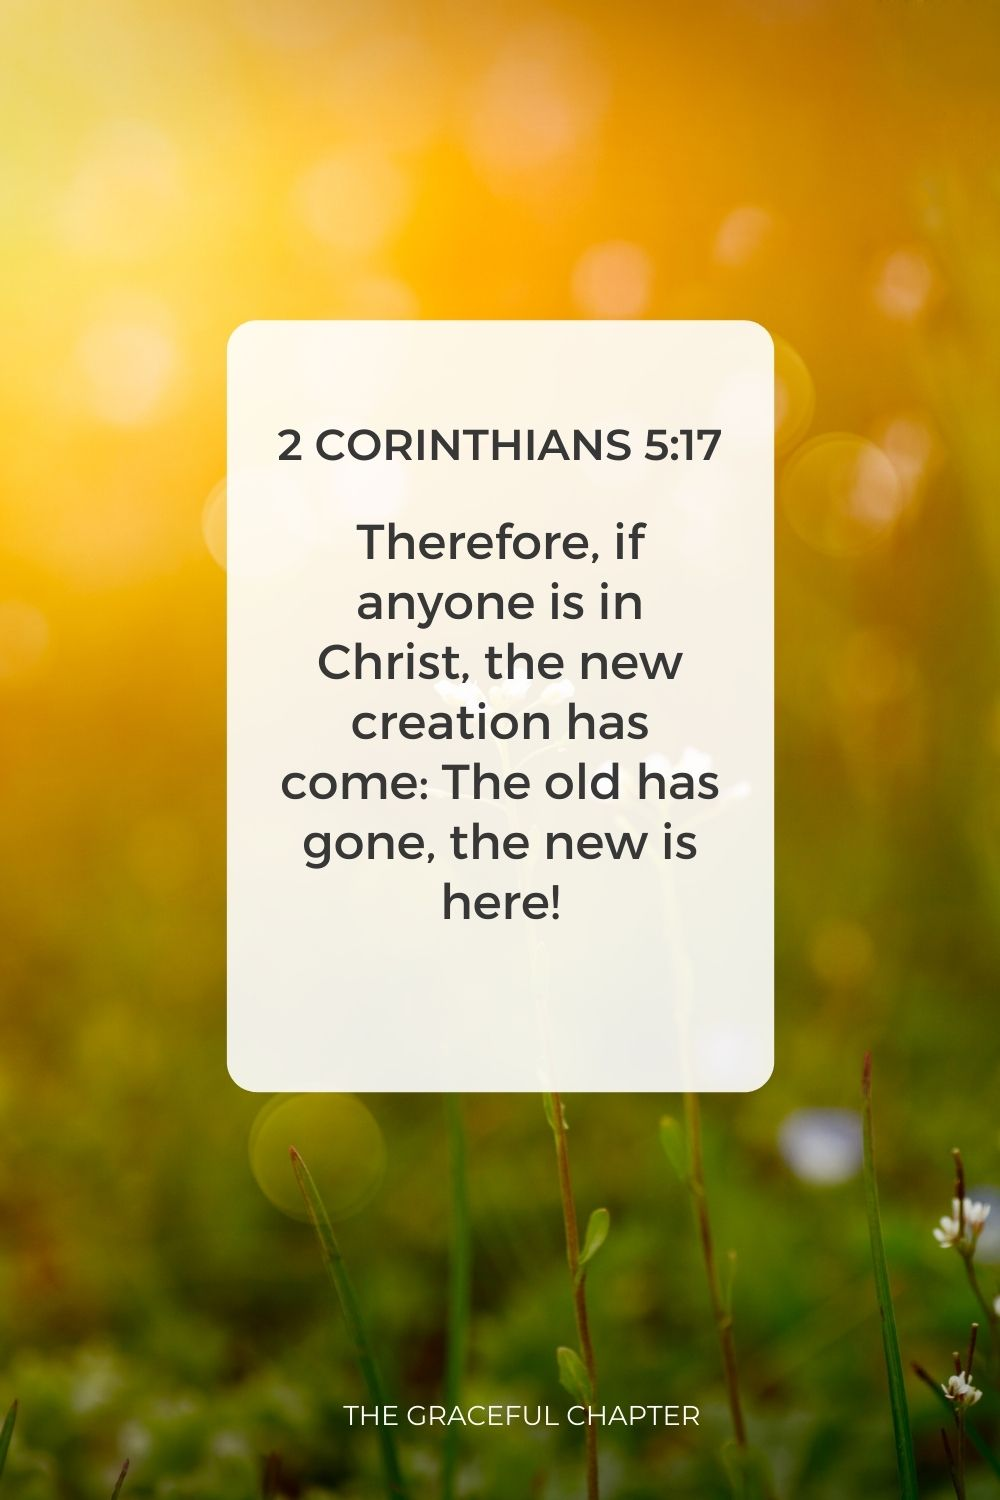 Therefore, if anyone is in Christ, the new creation has come: The old has gone, the new is here! 2 Corinthians 5:17